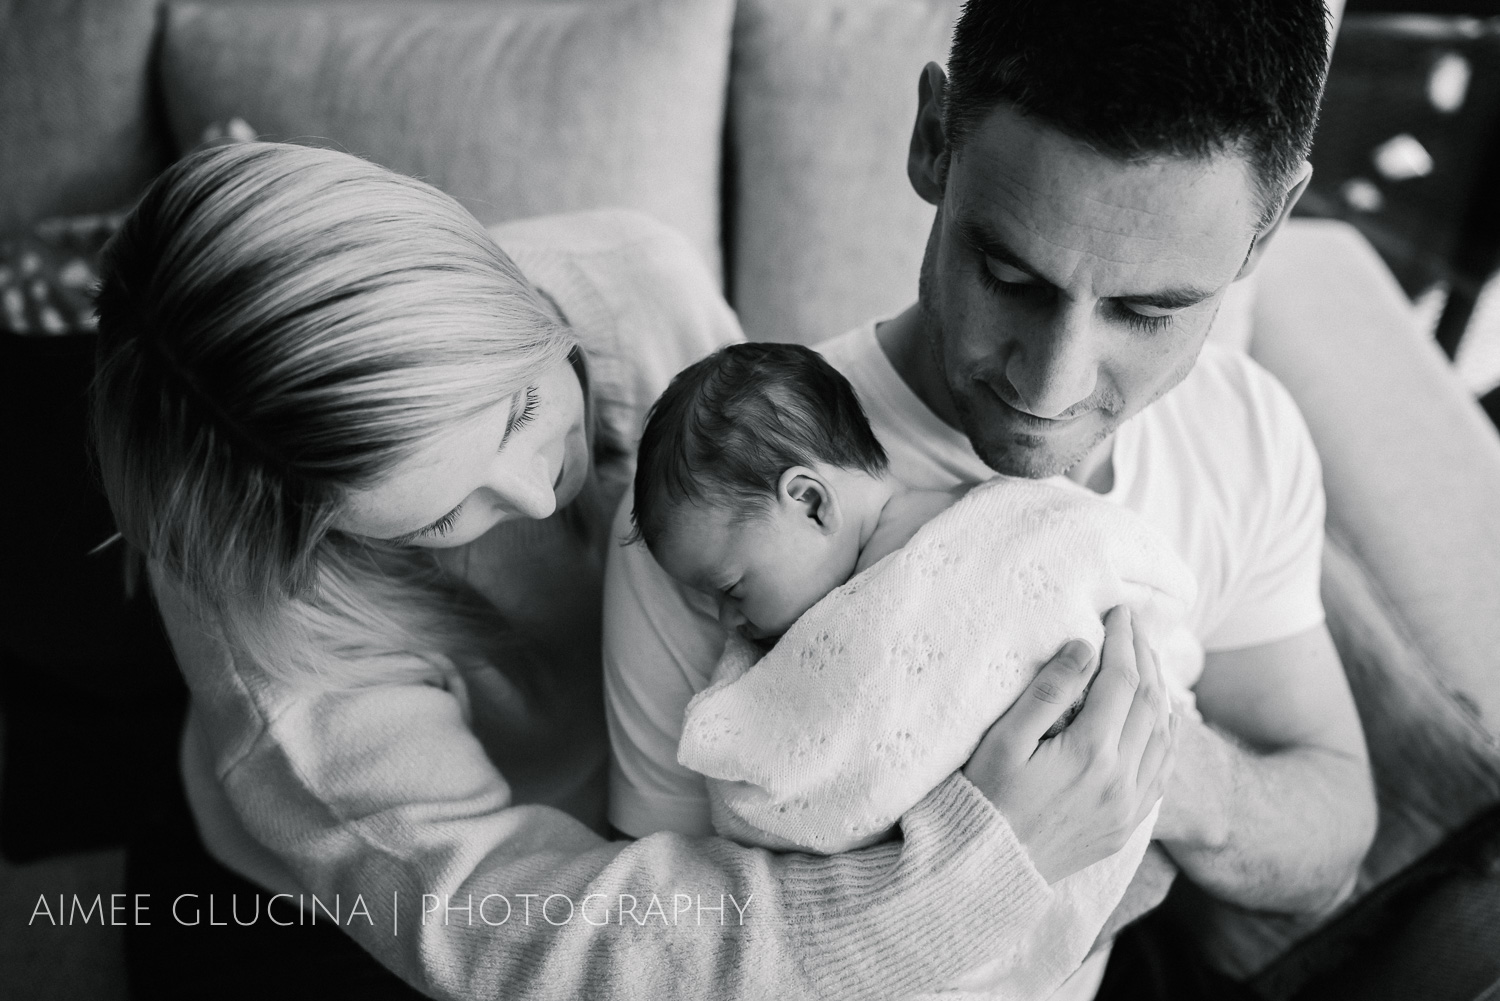 O'Keefe Lifestyle Newborn Session by Aimee Glucina Photography-30.jpg